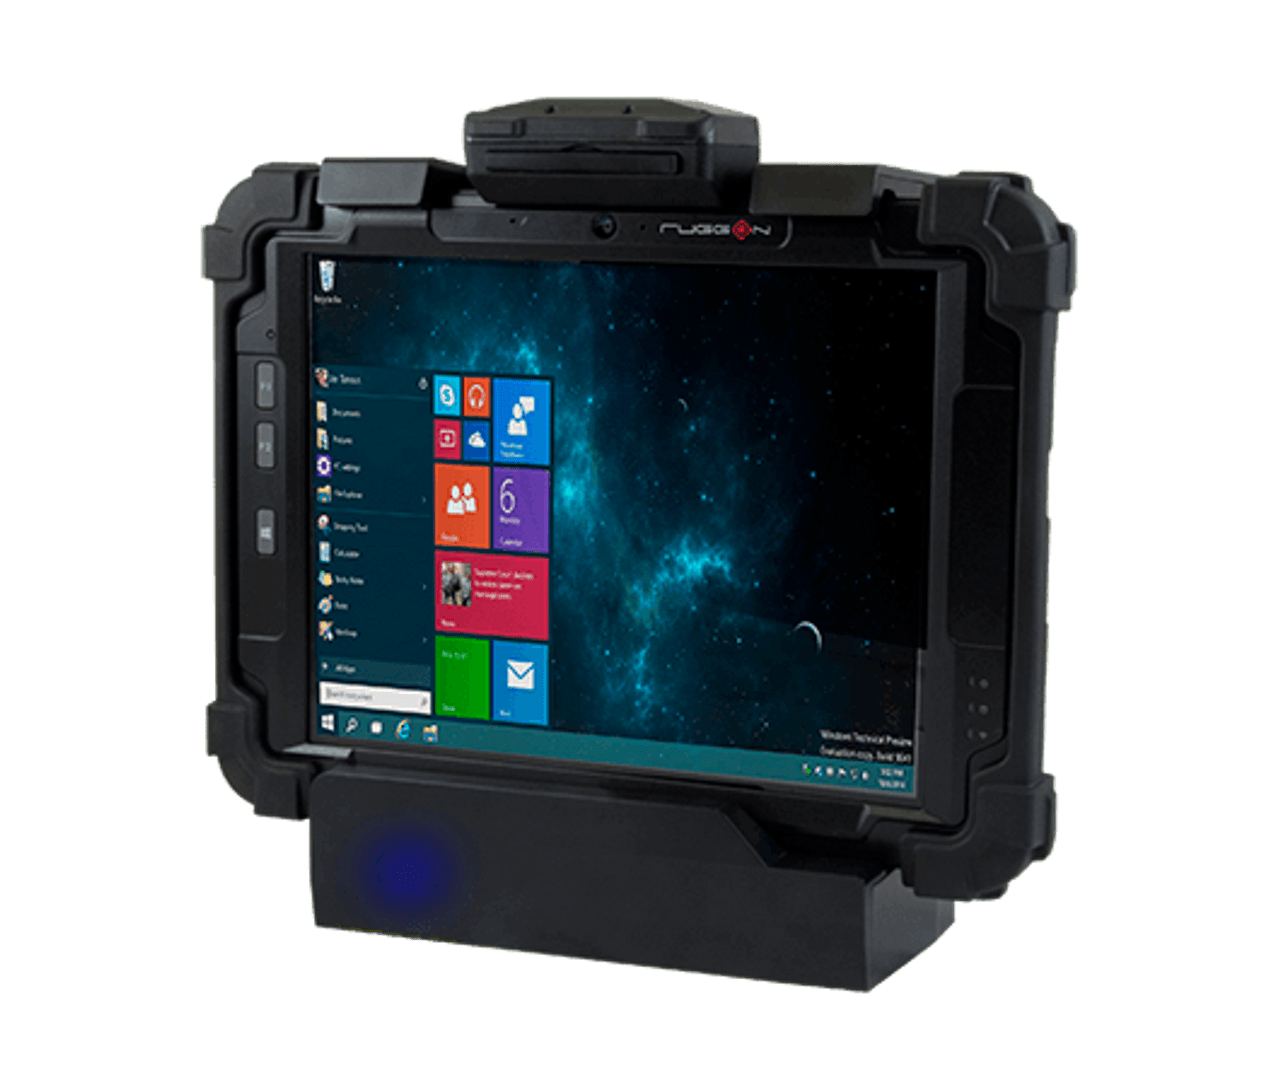 RuggON Blaxtone PM-522 Fully Rugged Tablet offers snap-on modules for data capture